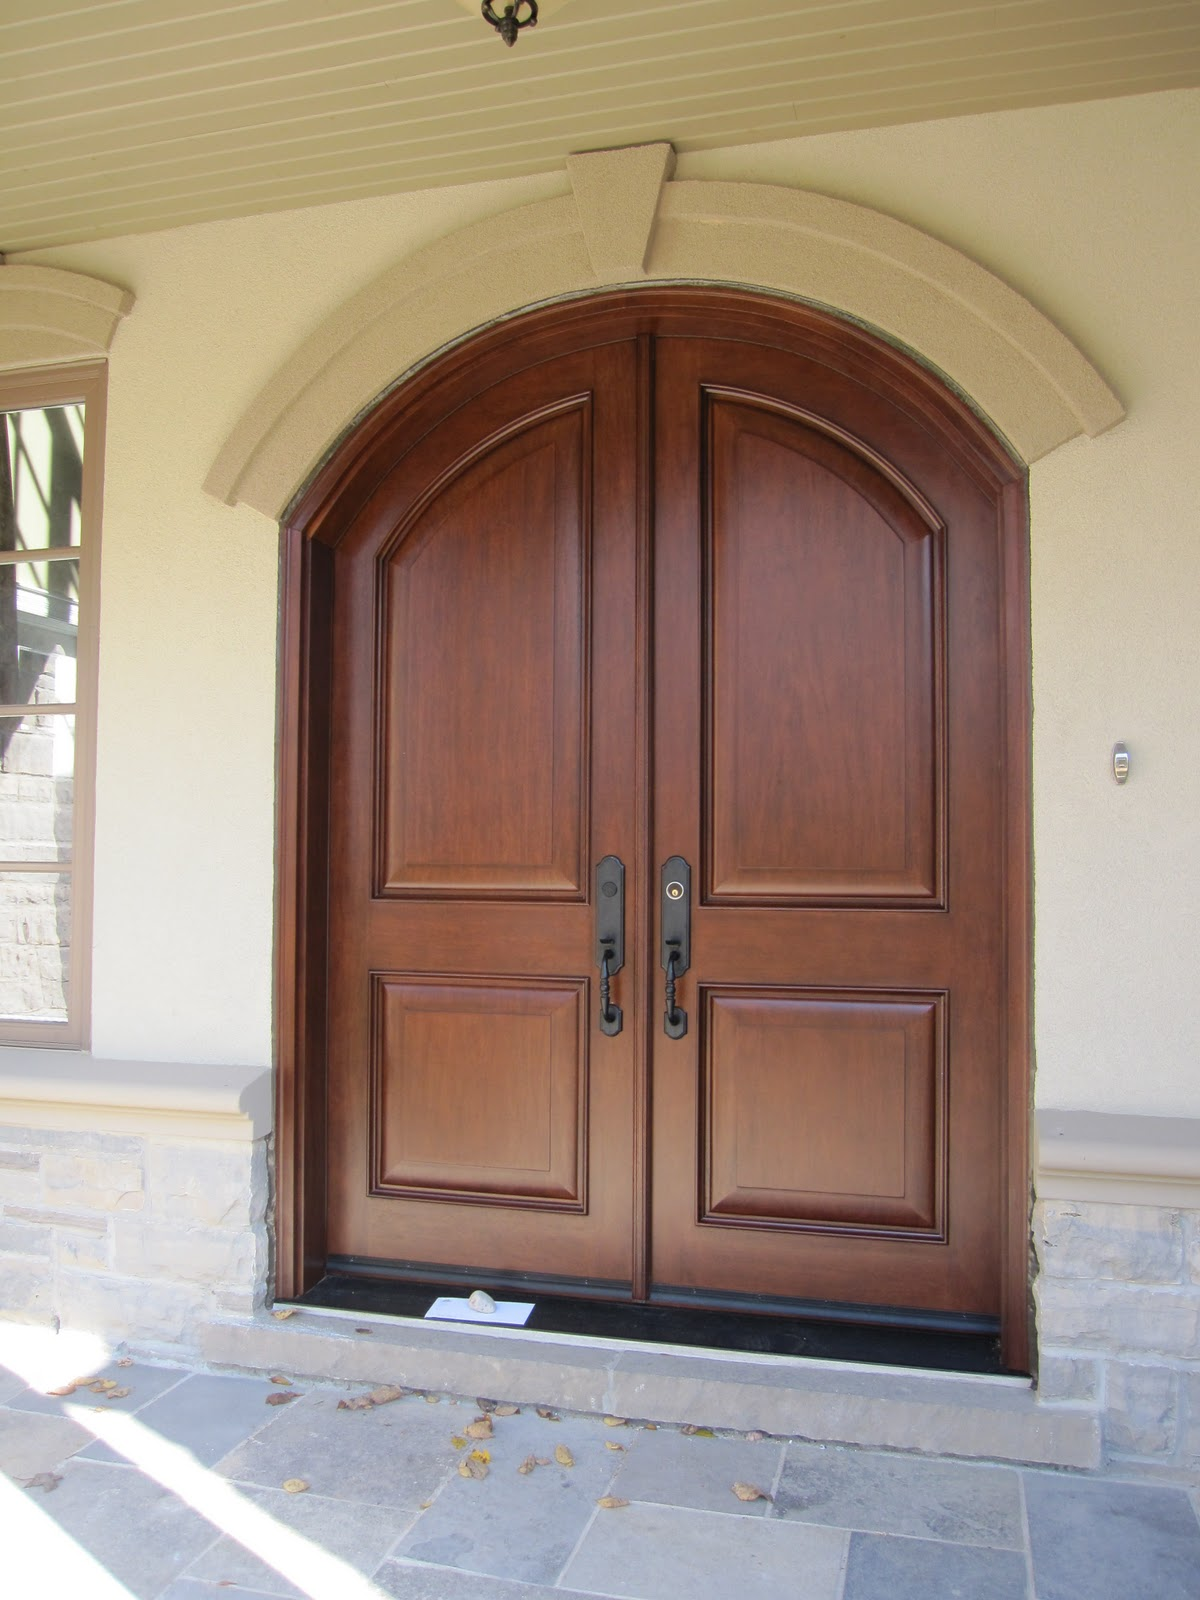 1600 #877244 Statements Define Your Home: February 2011 pic Arched Double Front Doors 42711200